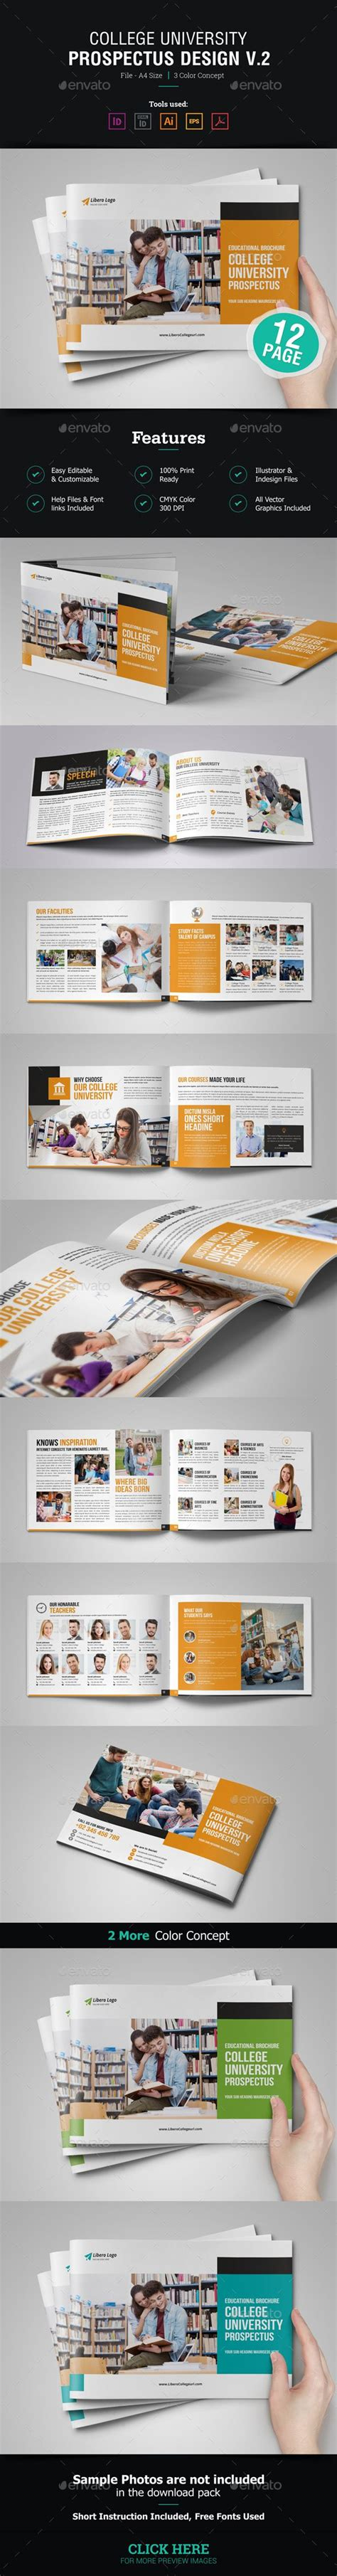 1000 images about brochure templates on pinterest